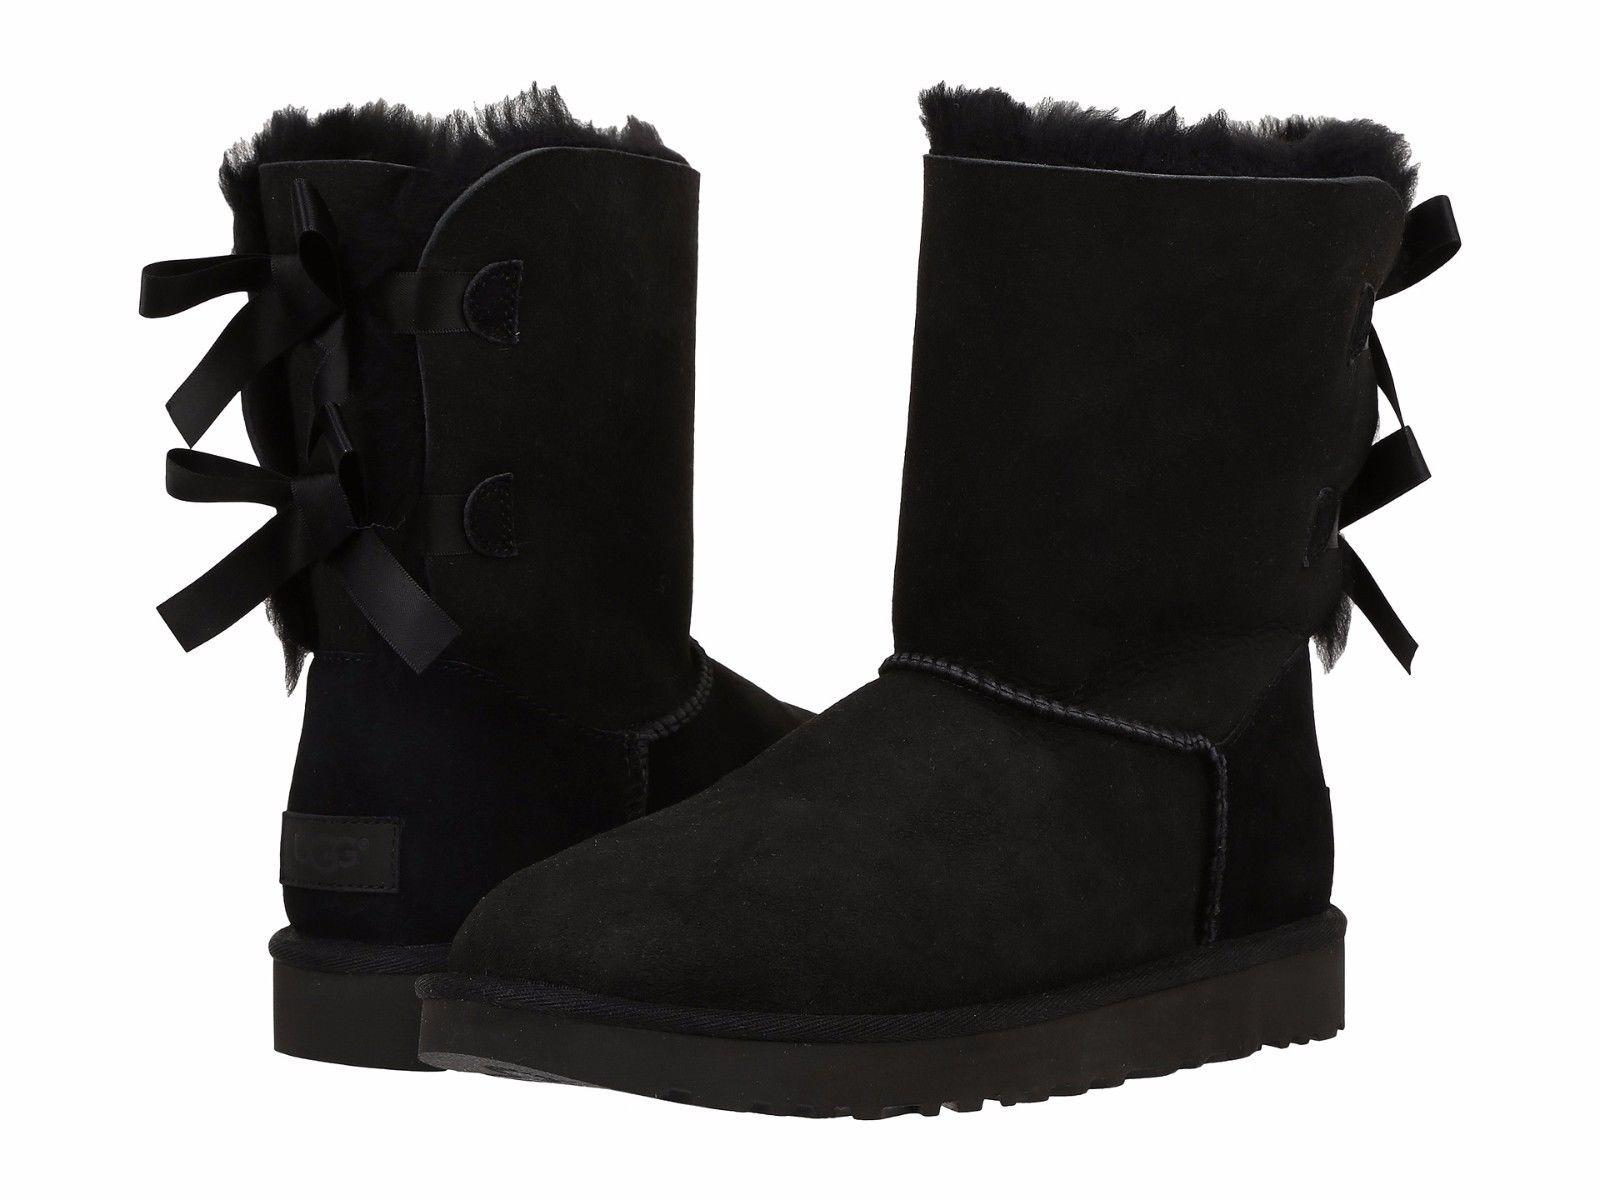 UGG Australia For Her 1016225 Size 6 Black Boots ...